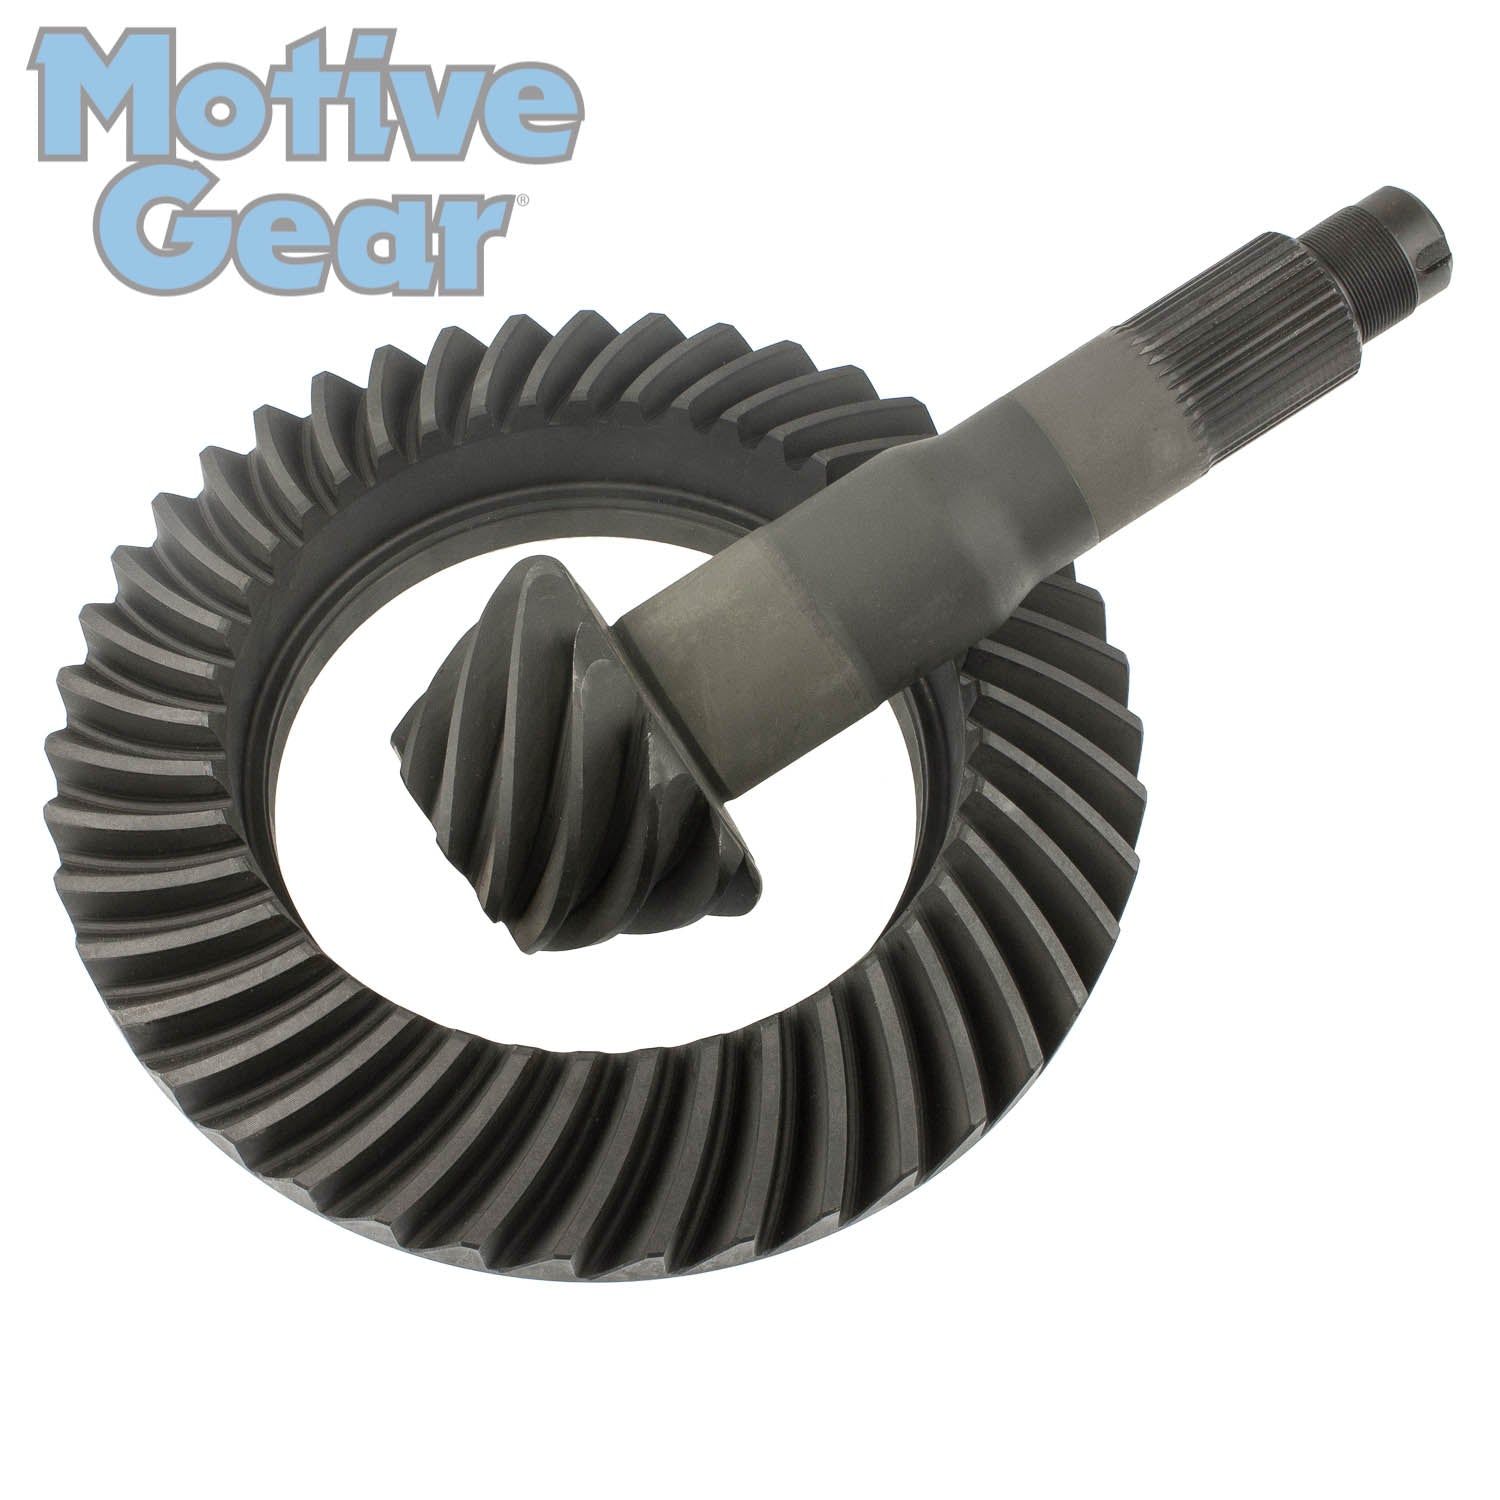 Ford 10.5 Motive Gear Ring and Pinion Gear Set